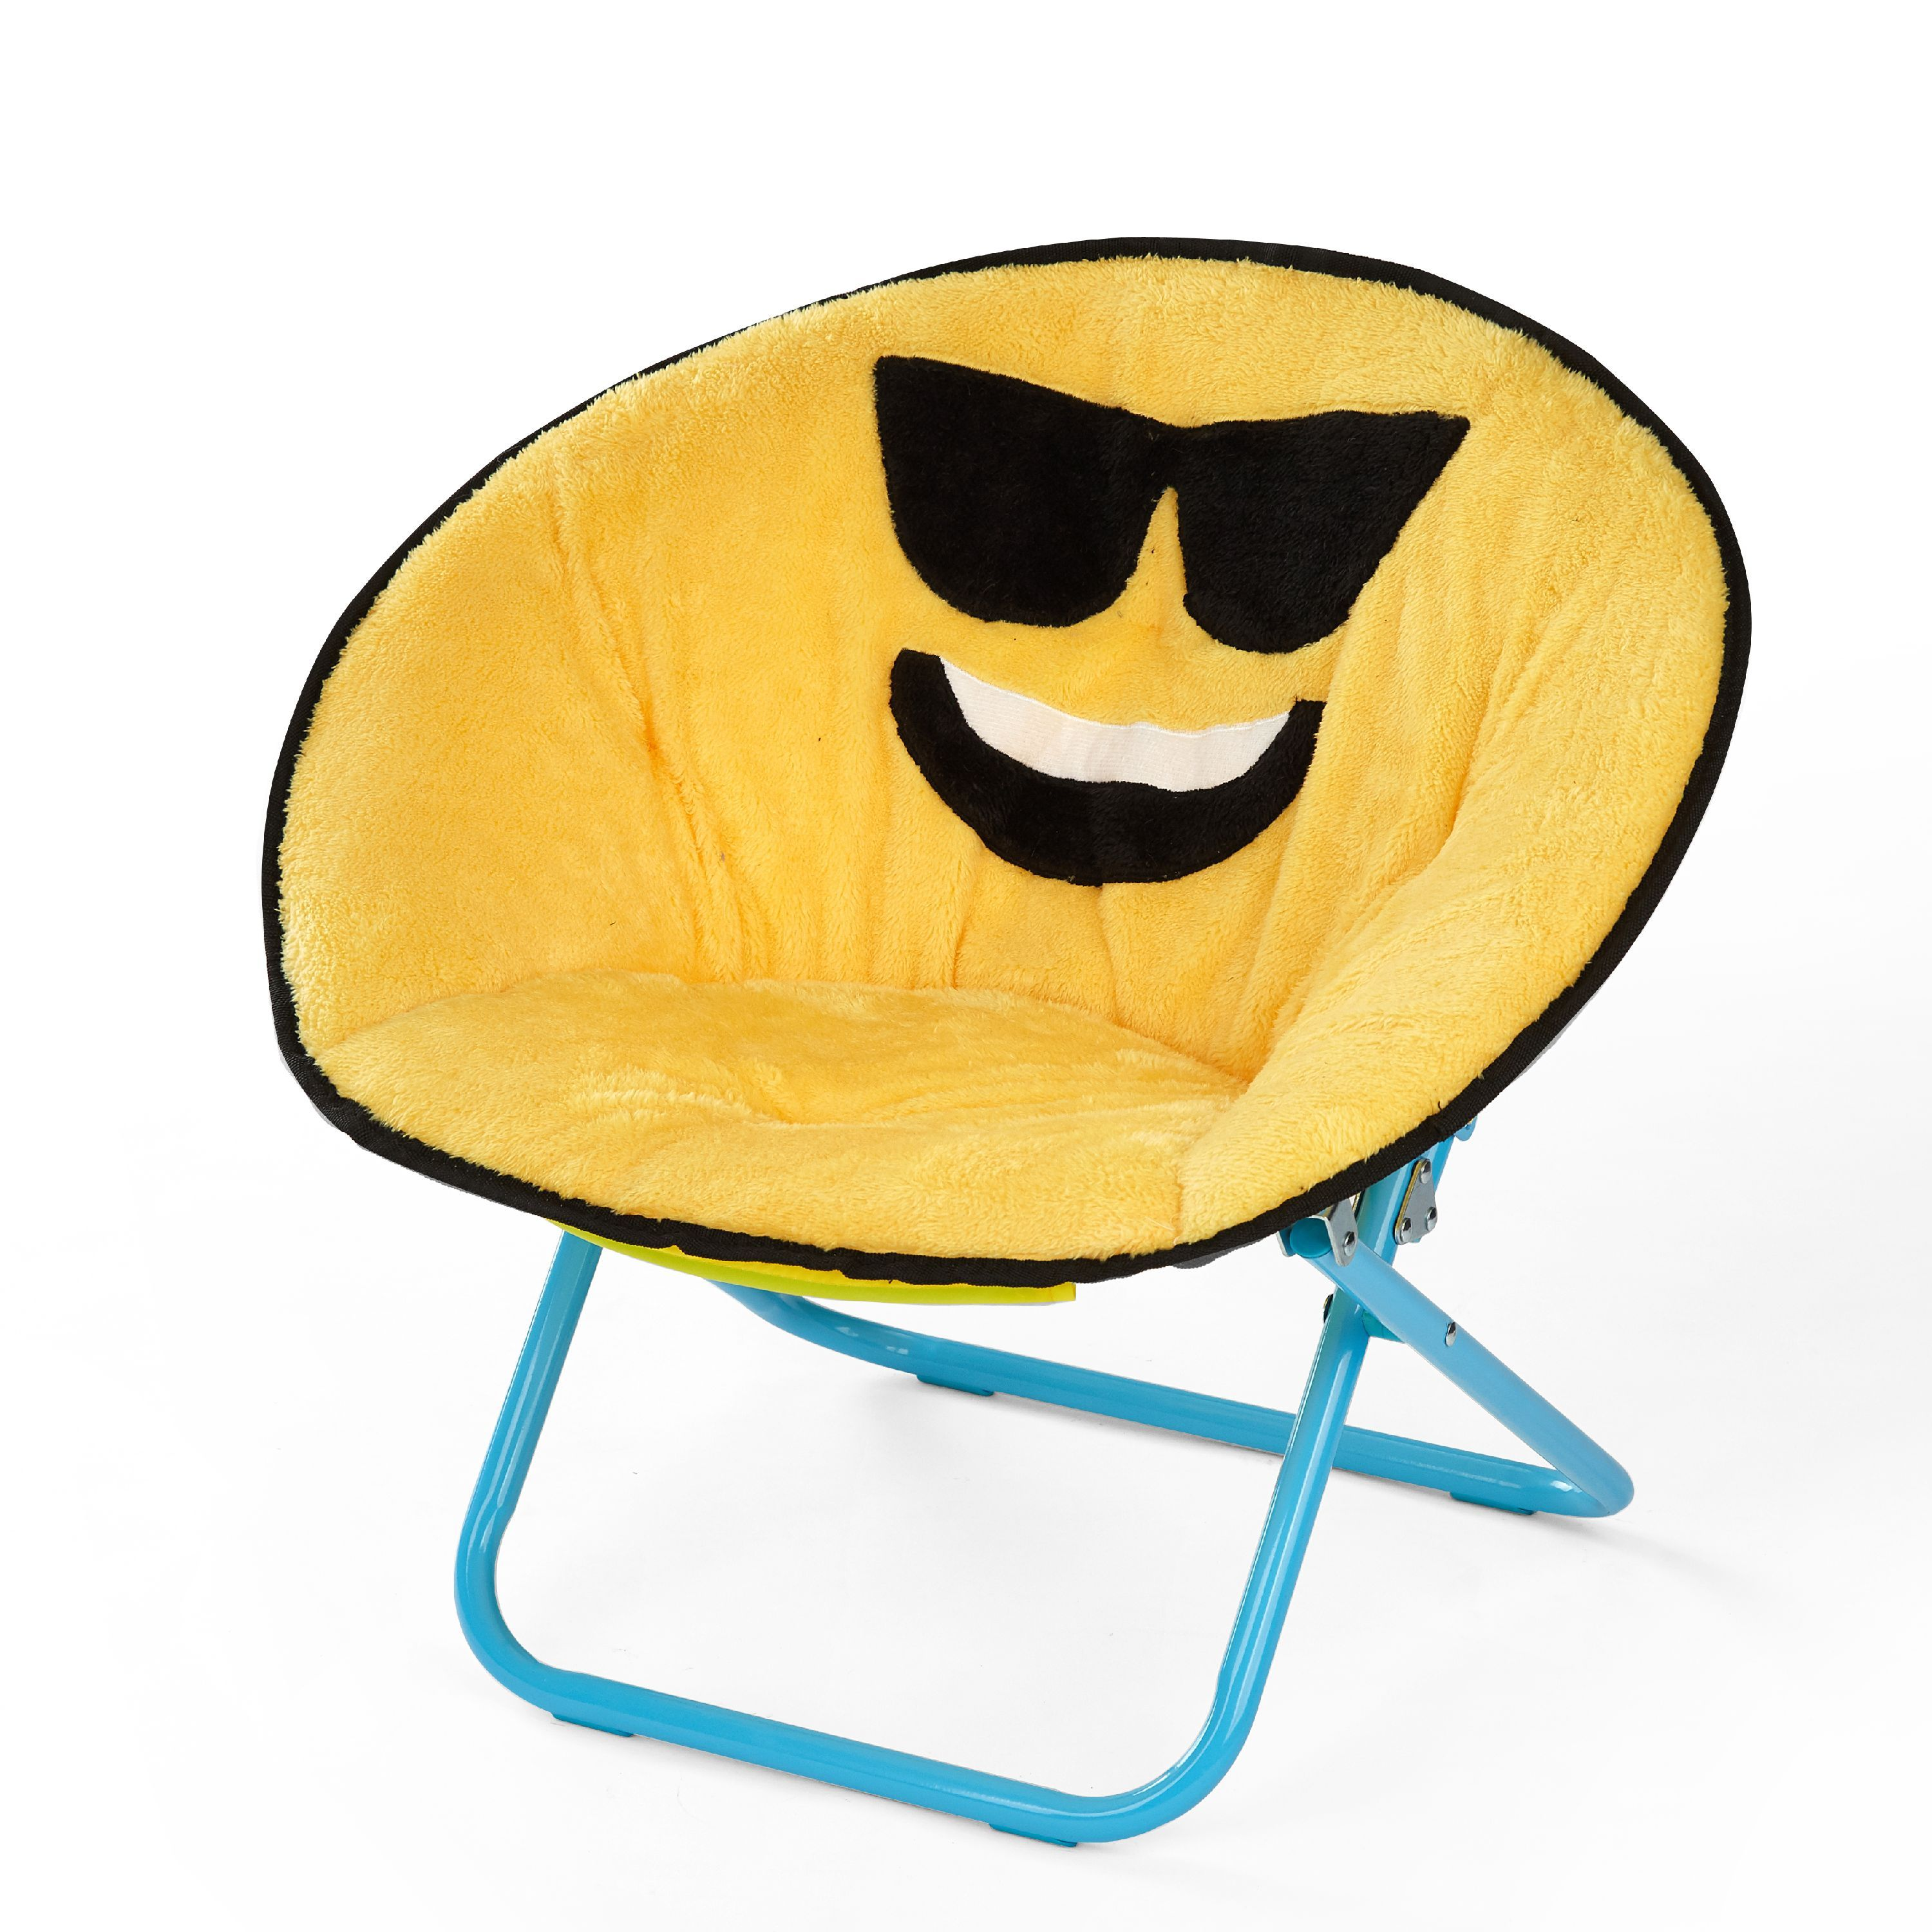 Emoji Pals Saucer Chair Walmart Com In 2020 Saucer Chairs Kids Chairs Chair